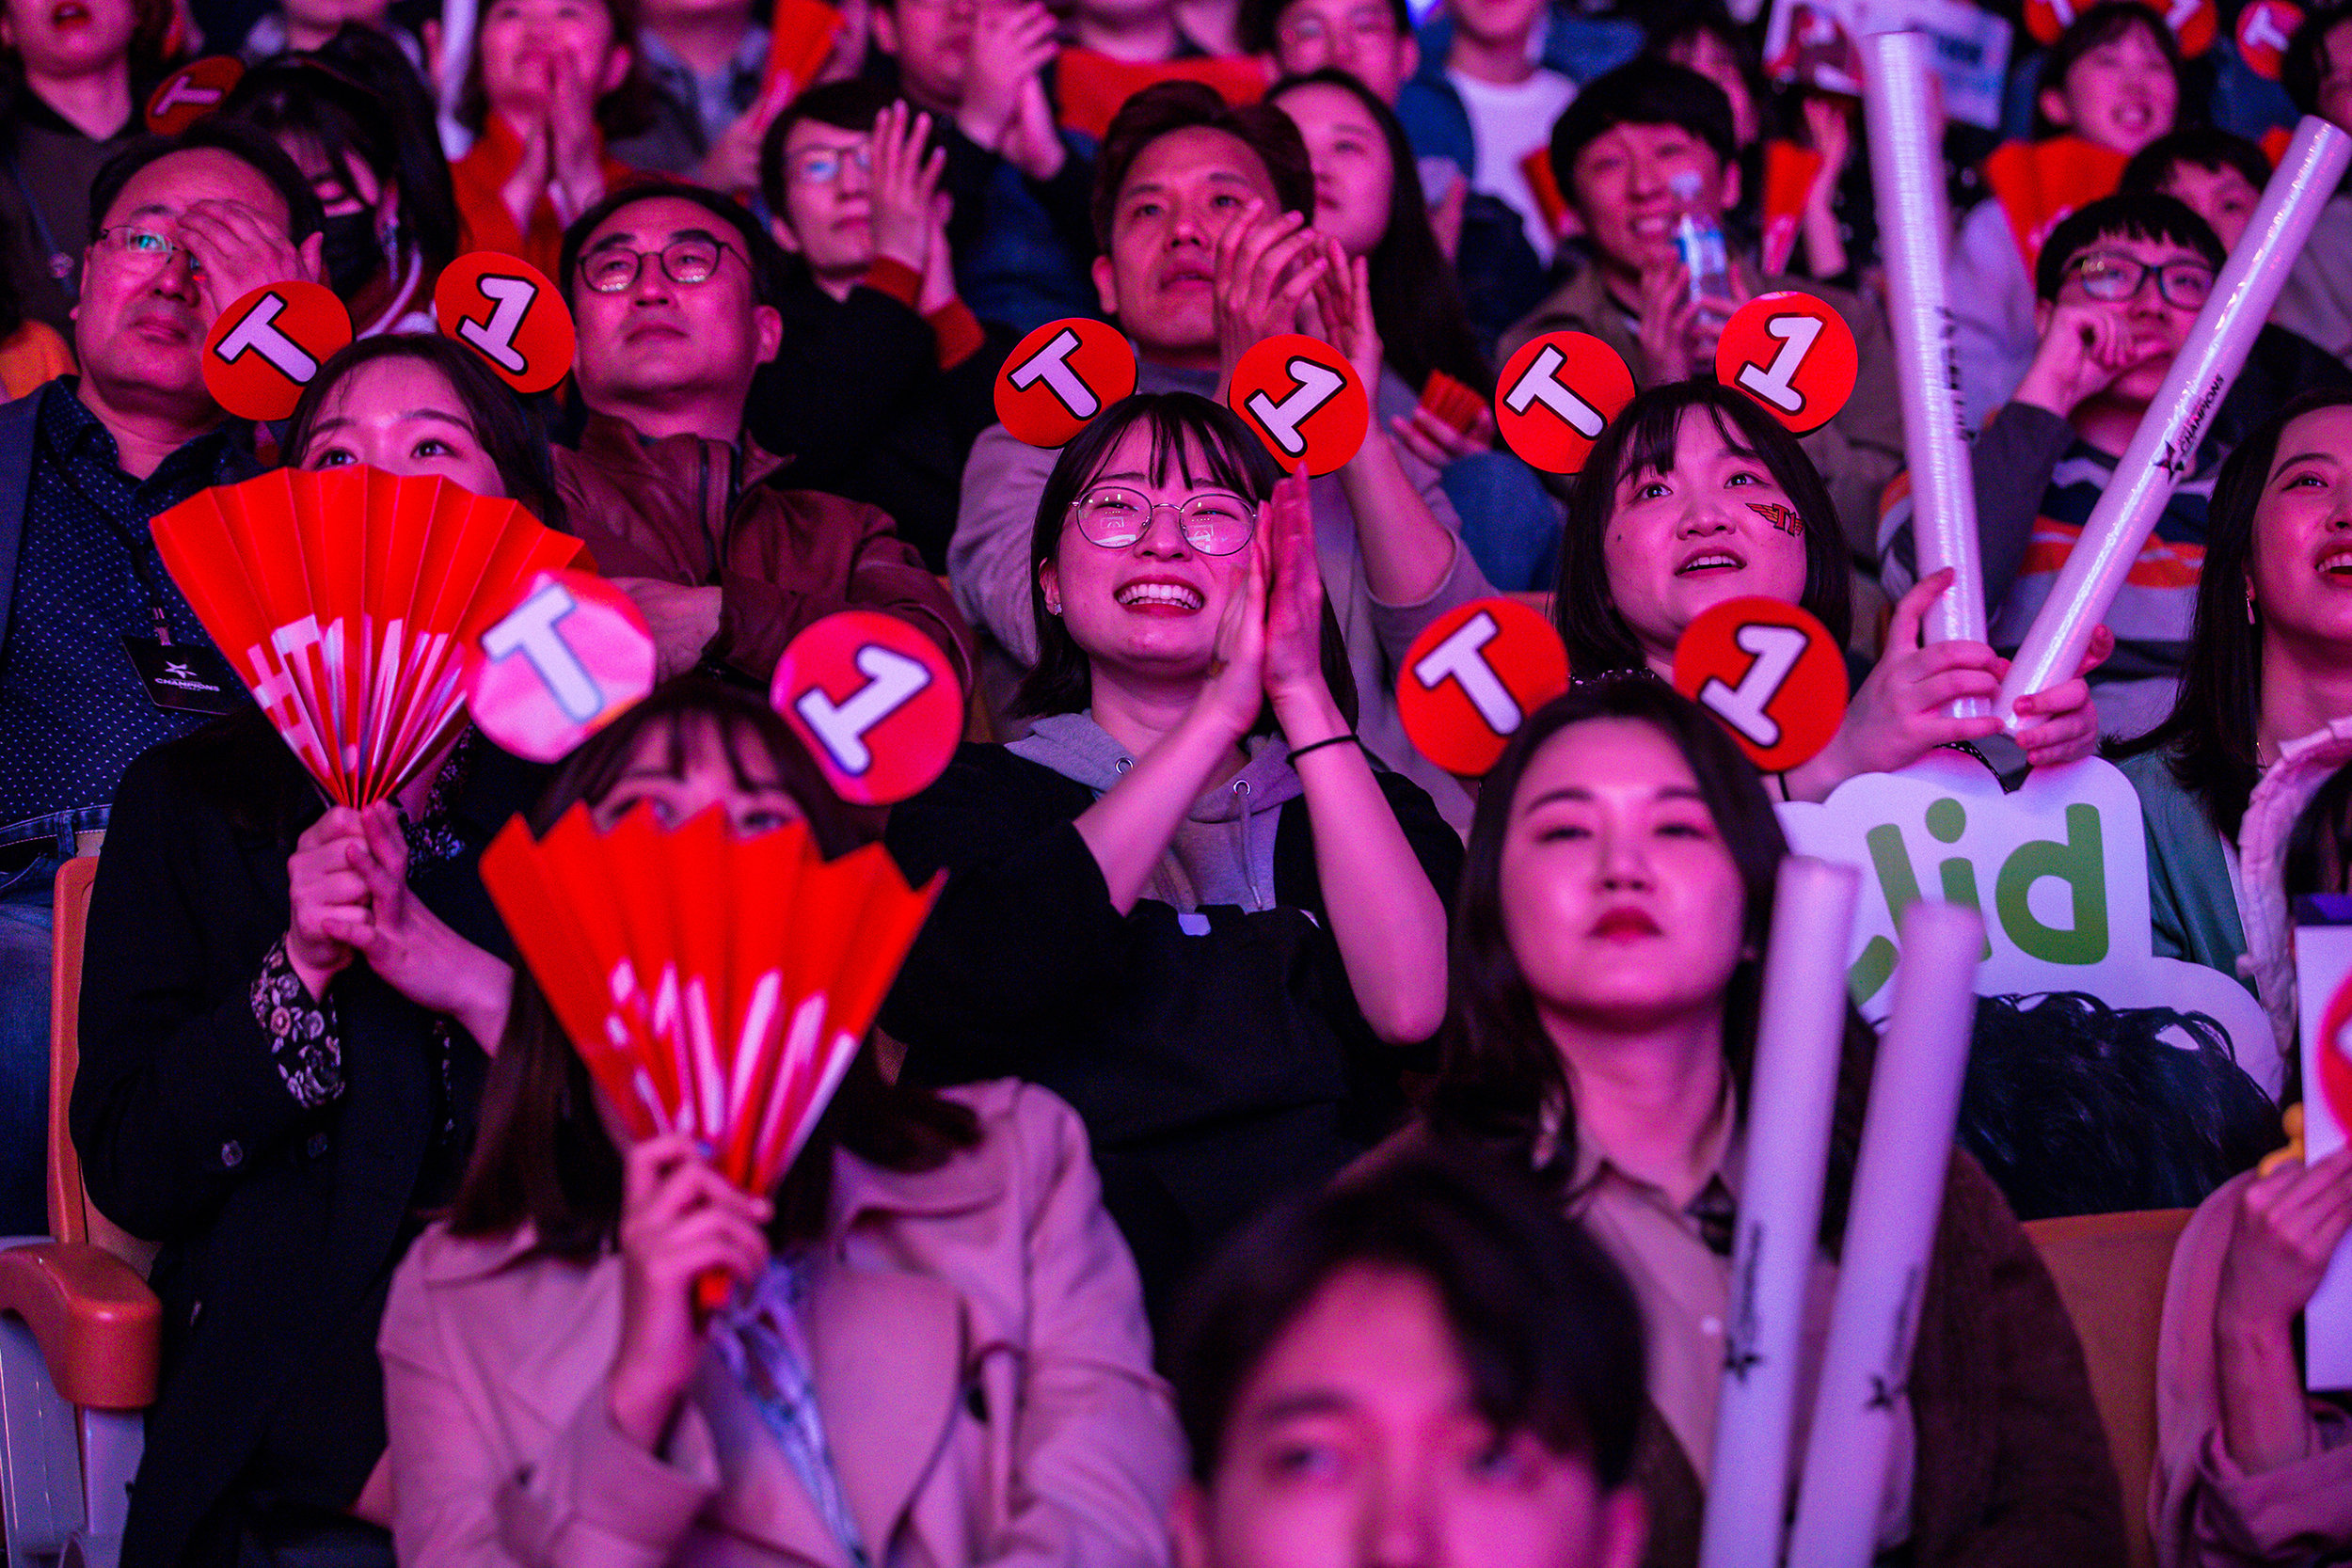 SEOUL, SOUTH KOREA - APRIL 13: Crowd reacting to SK Telecom T1 win 3-0 over Griffin at LCK Spring Finals at Jamsil Sports Center on April 13, 2019 in Seoul, Korea. Photo by Timo Verdeil/ESPAT Media